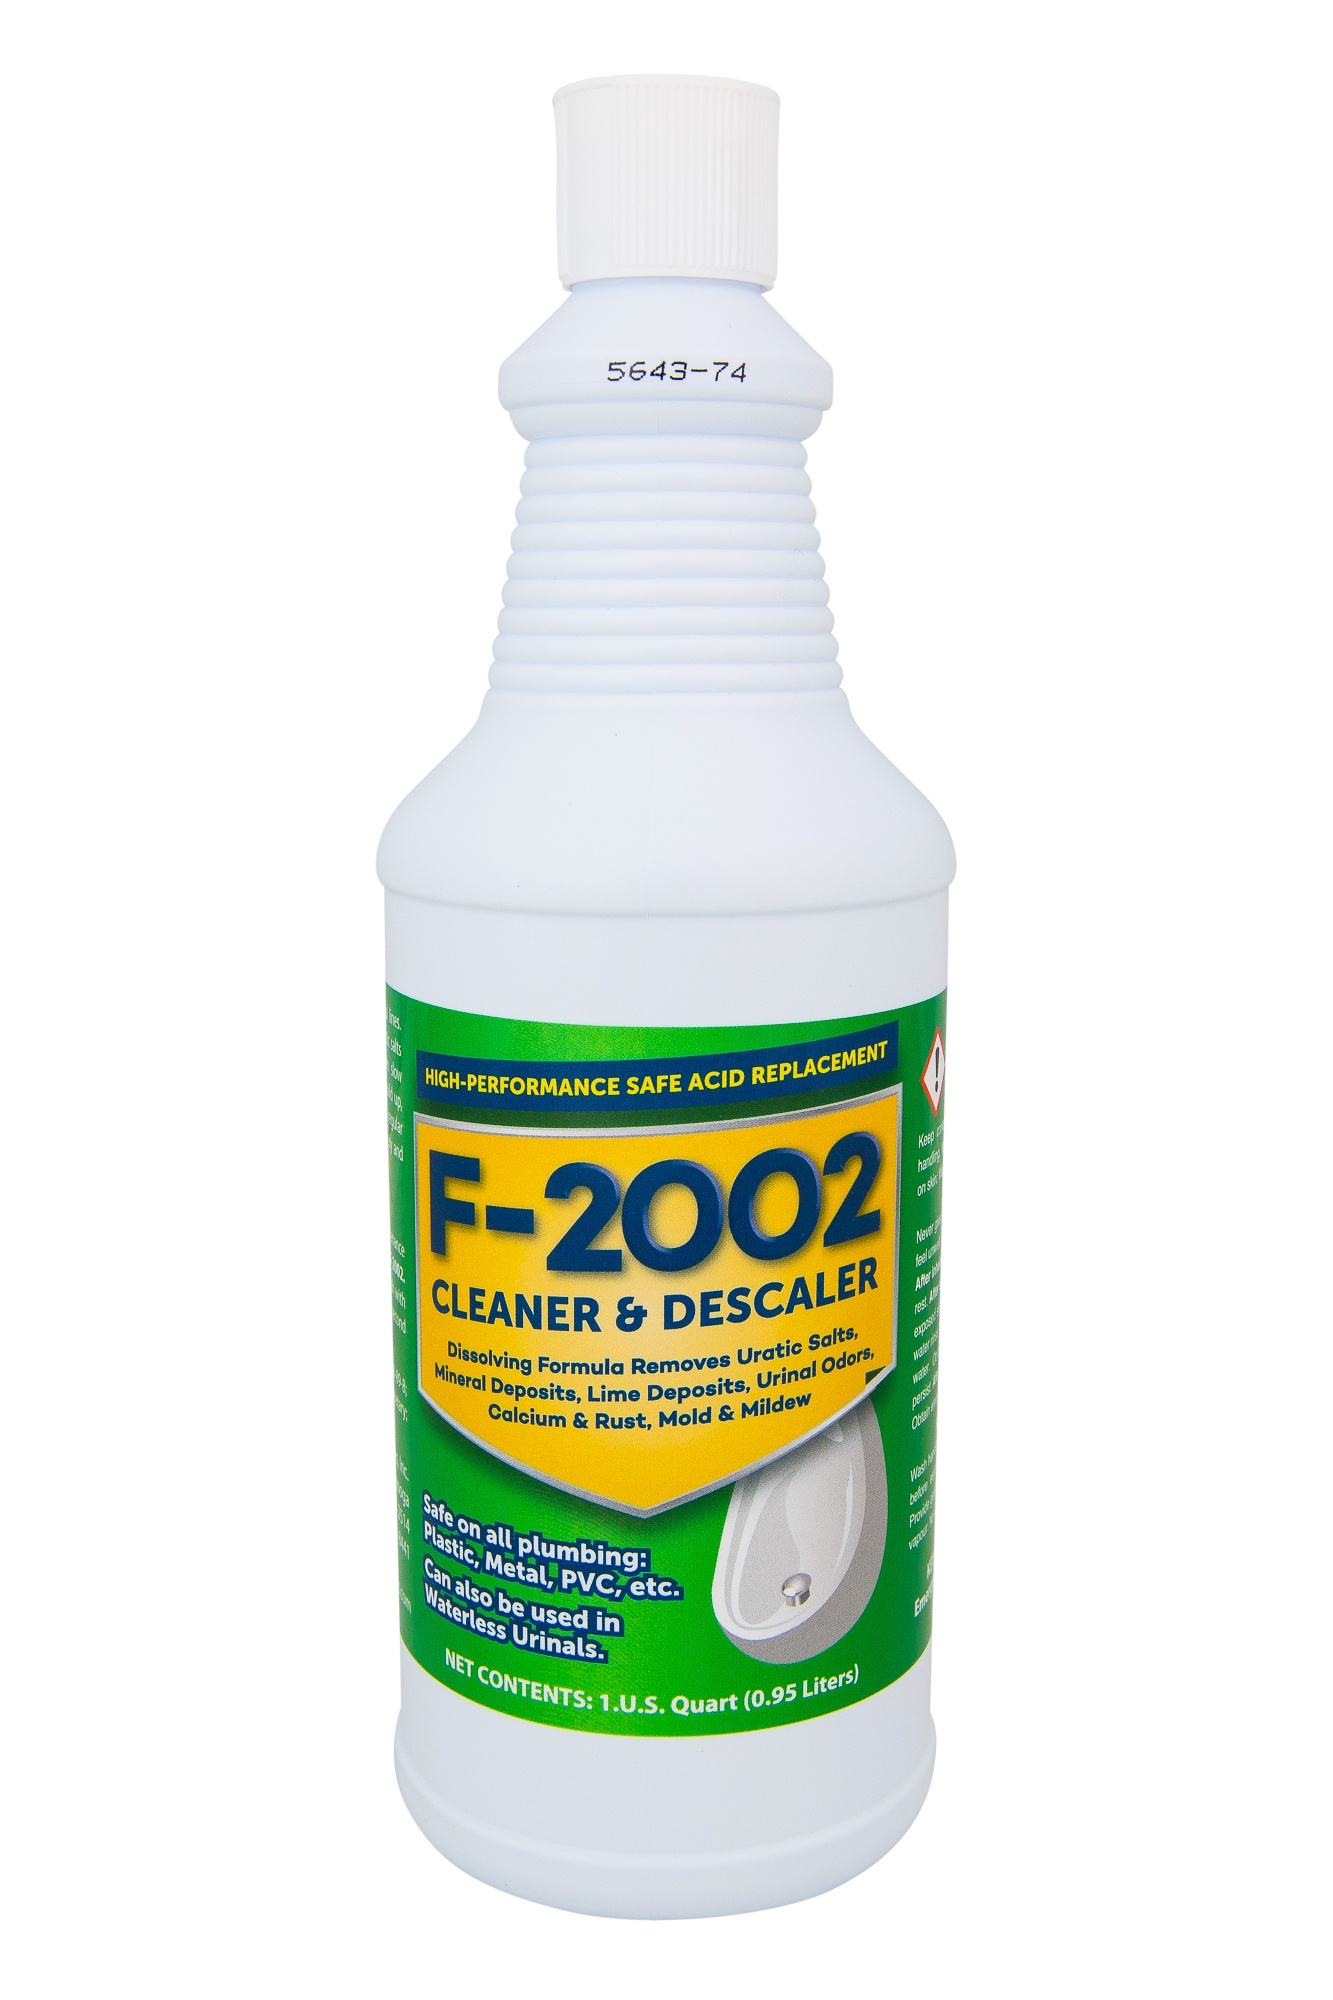 F-2002 ACID REPLACEMENT CLEANER, URINAL salts remover,